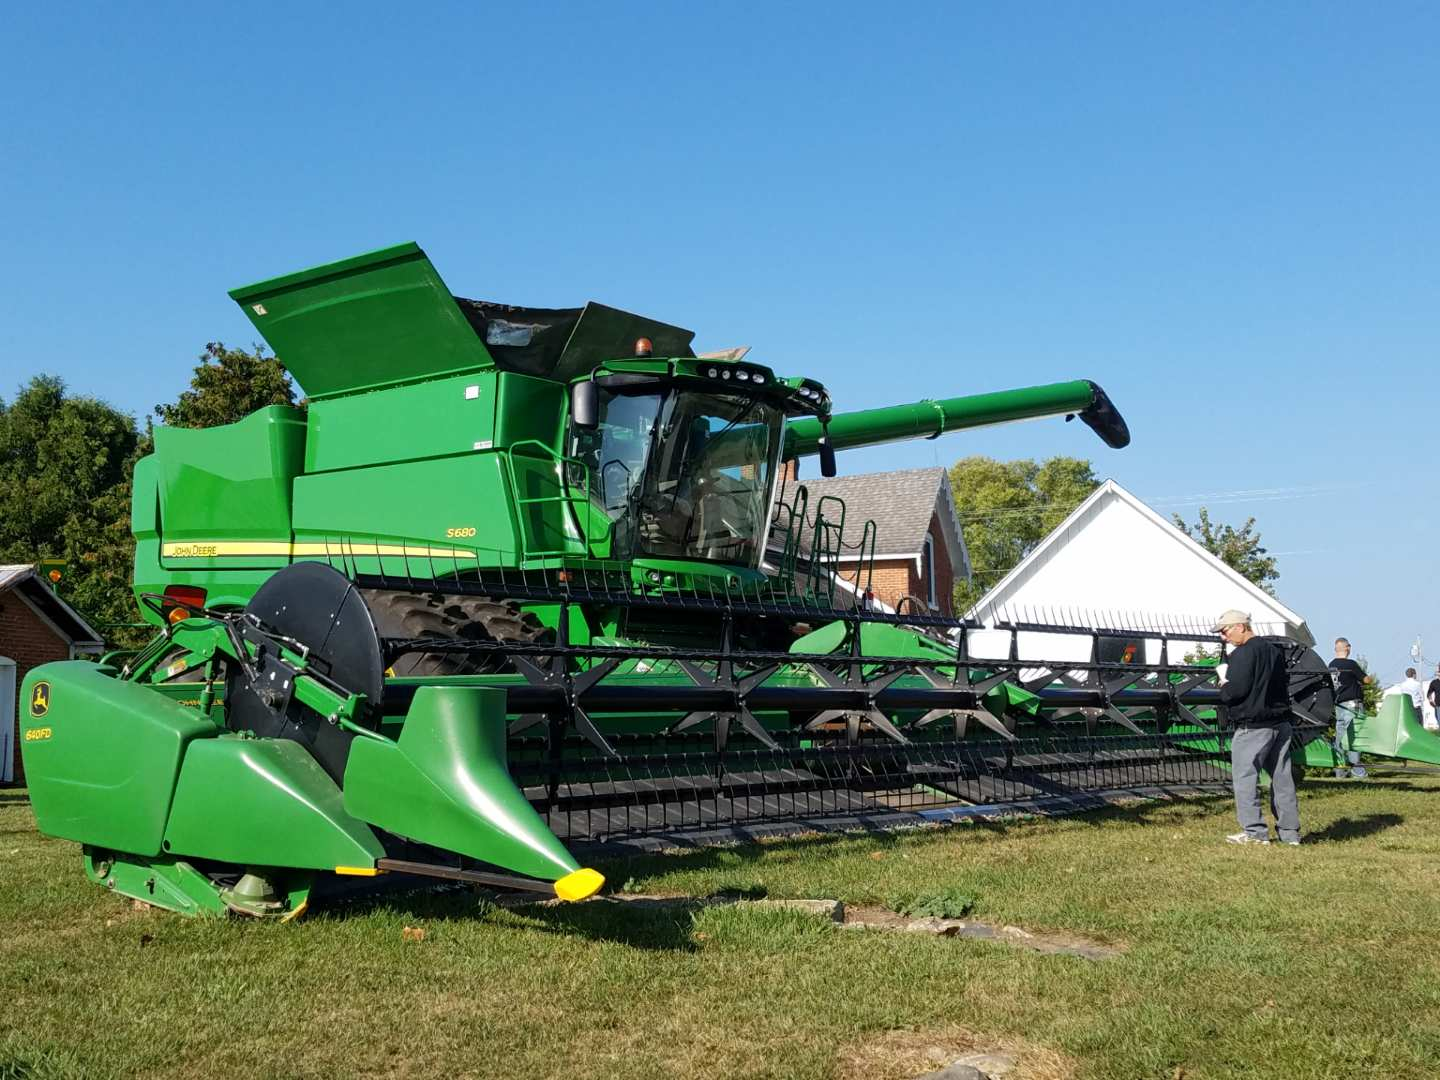 man standing in front of large farm machine.